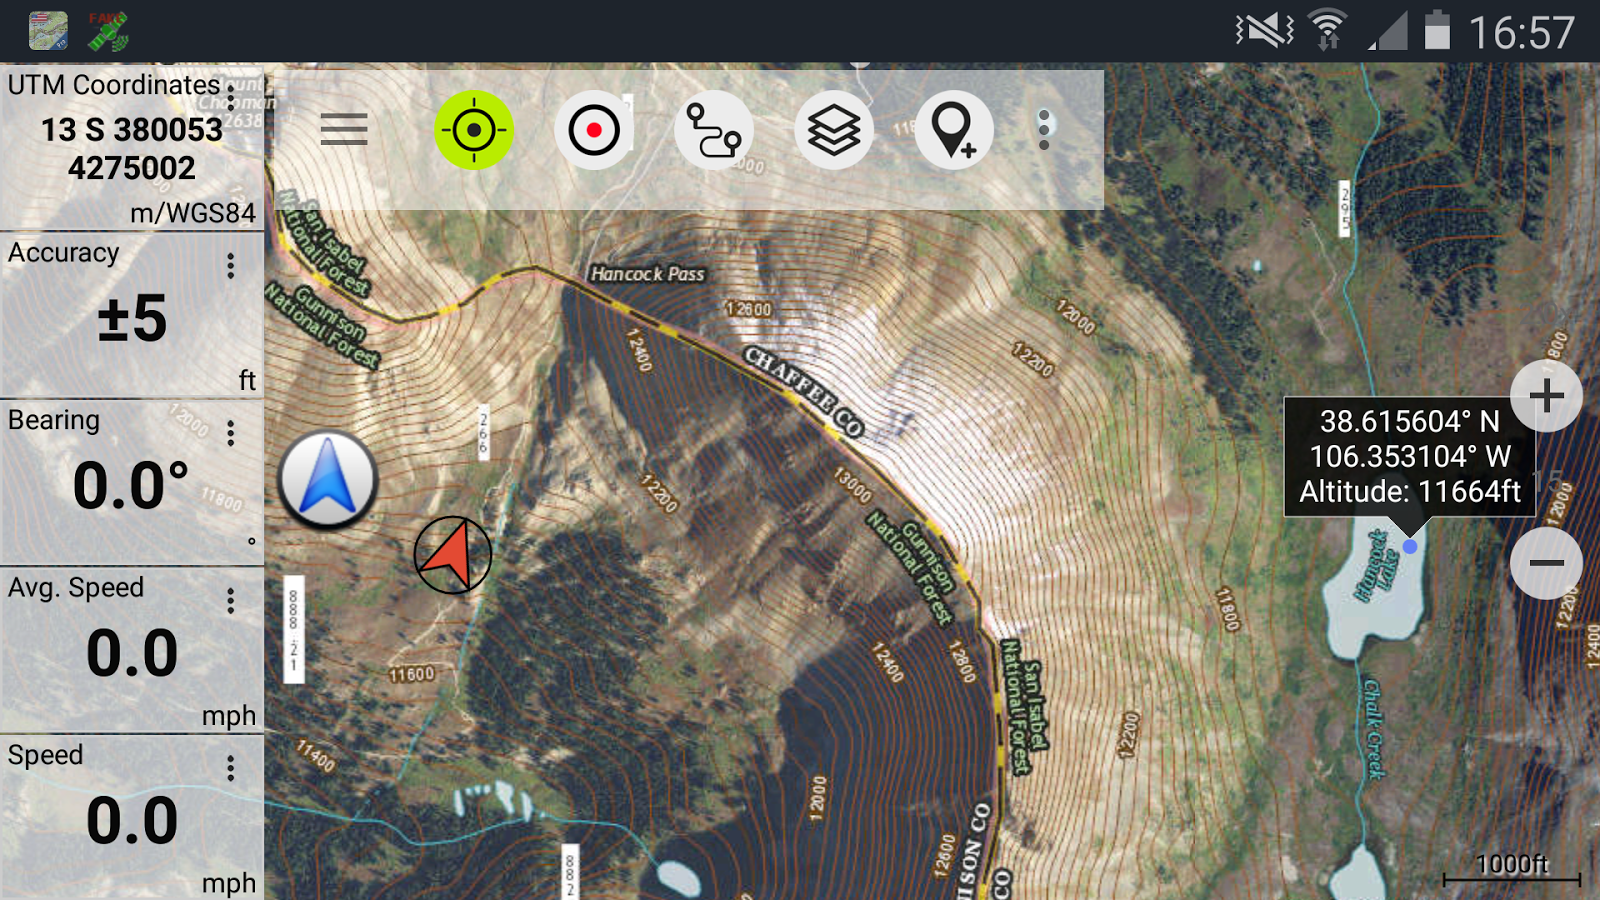 US Topo Maps Pro Android Apps On Google Play - Migrate us topo free maps to pro versino